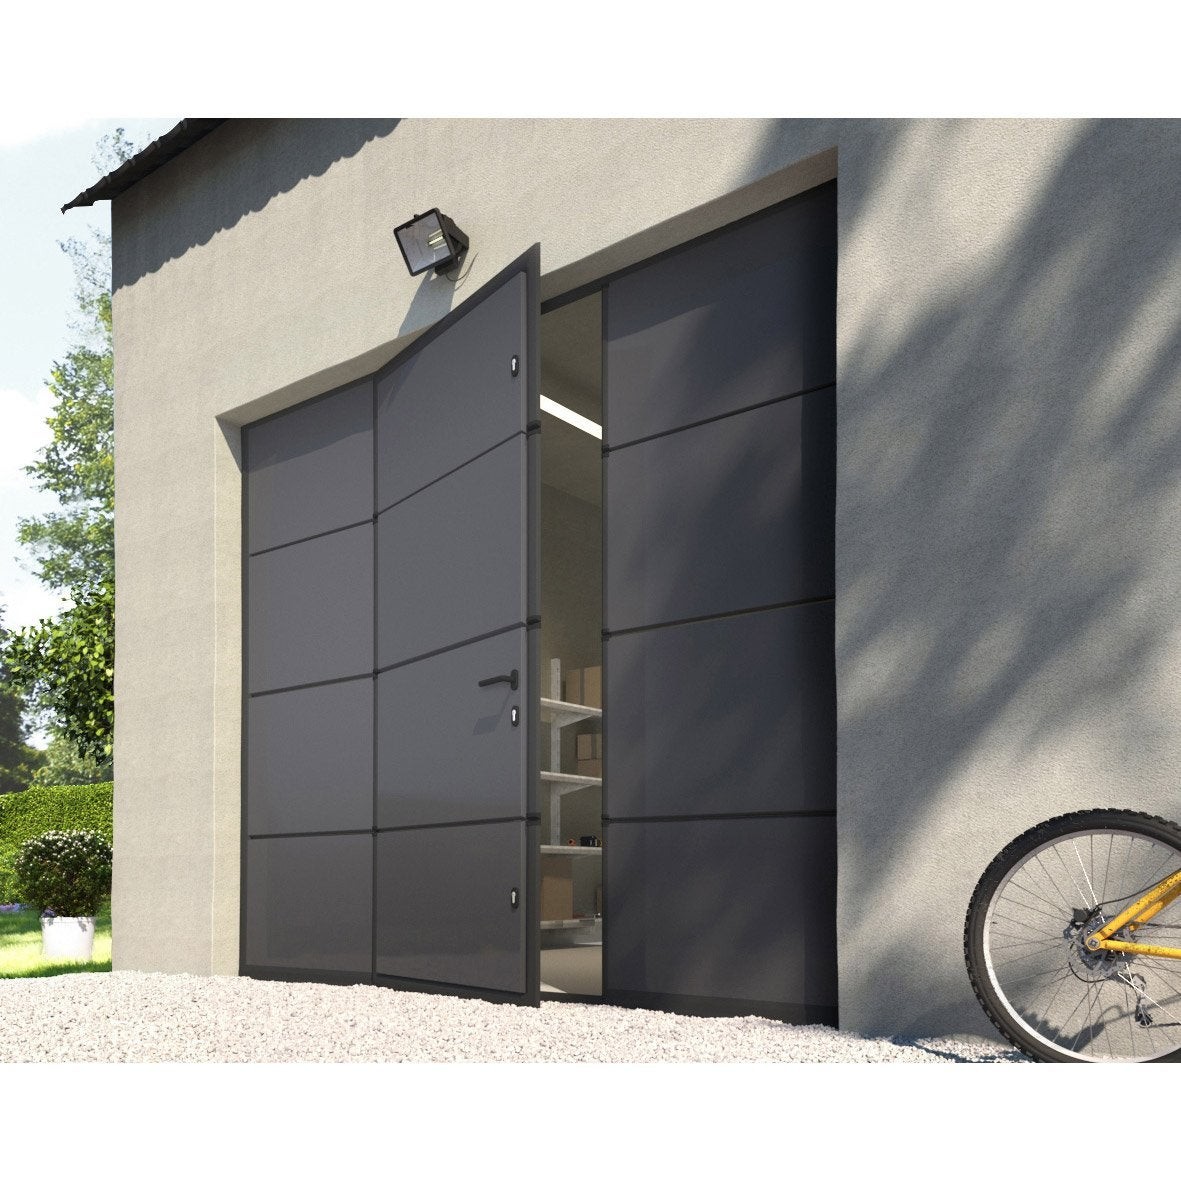 Porte de garage sectionnelle motoris e artens essentiel for Porte de garage sectionnelle sur mesure hormann